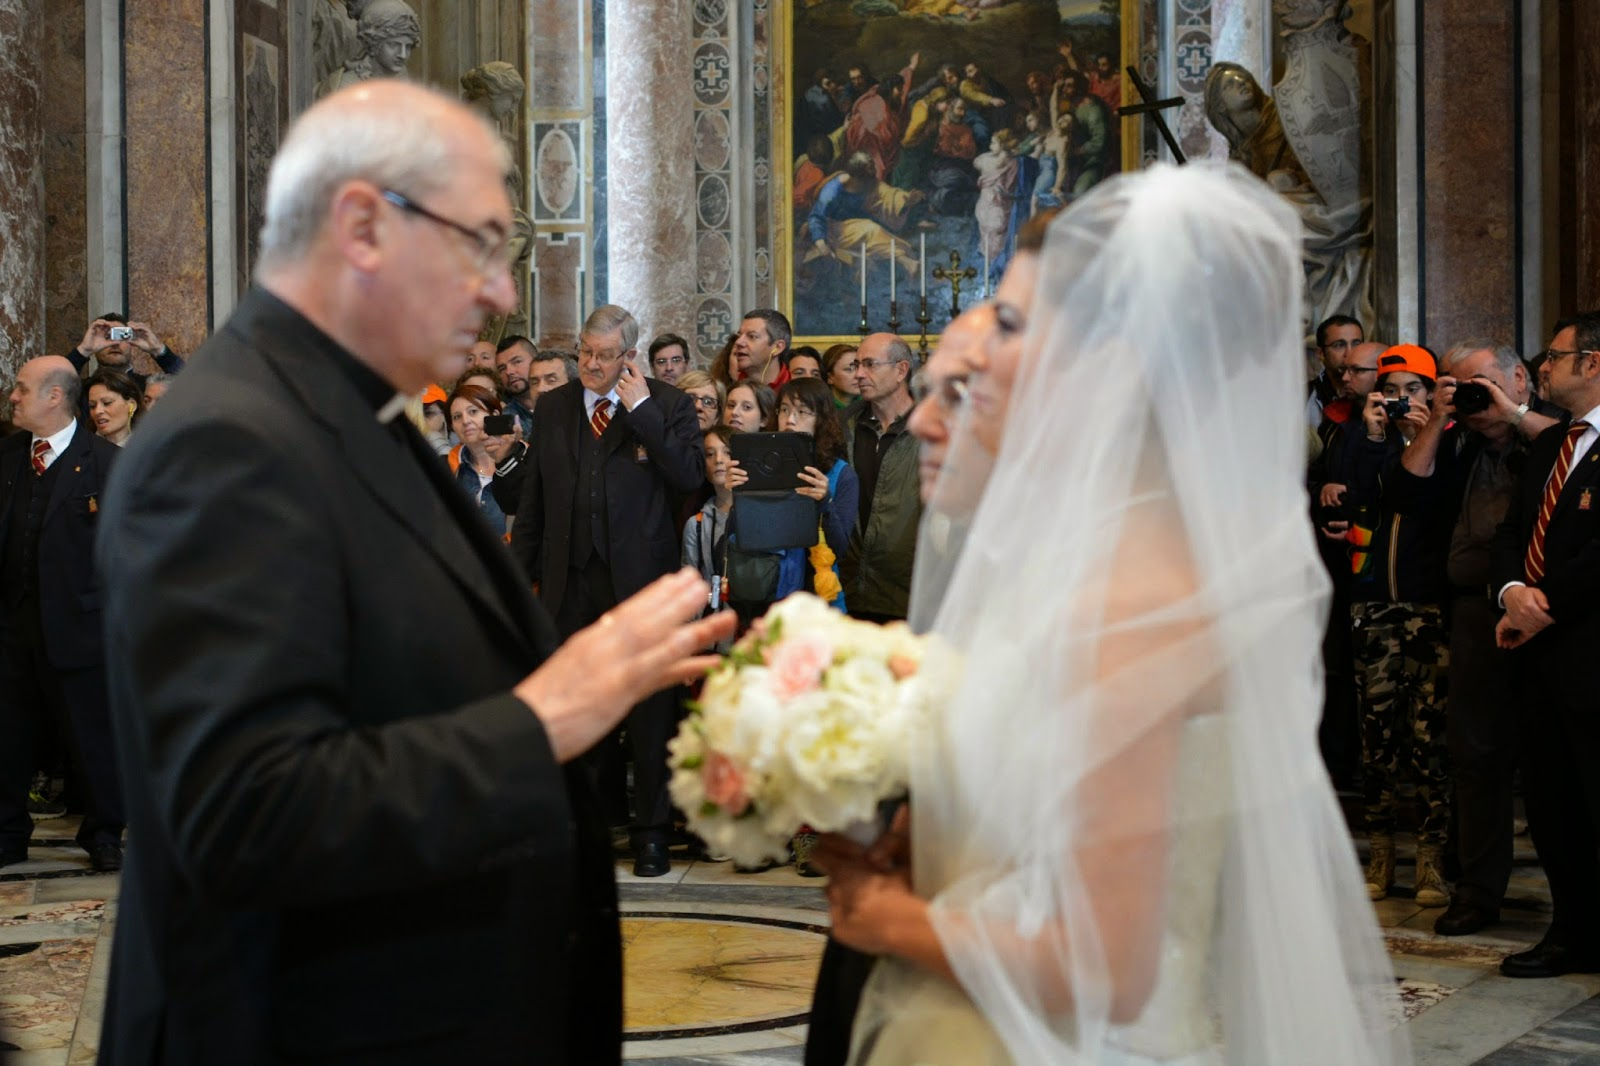 wedding at st peter's basilica vatican city